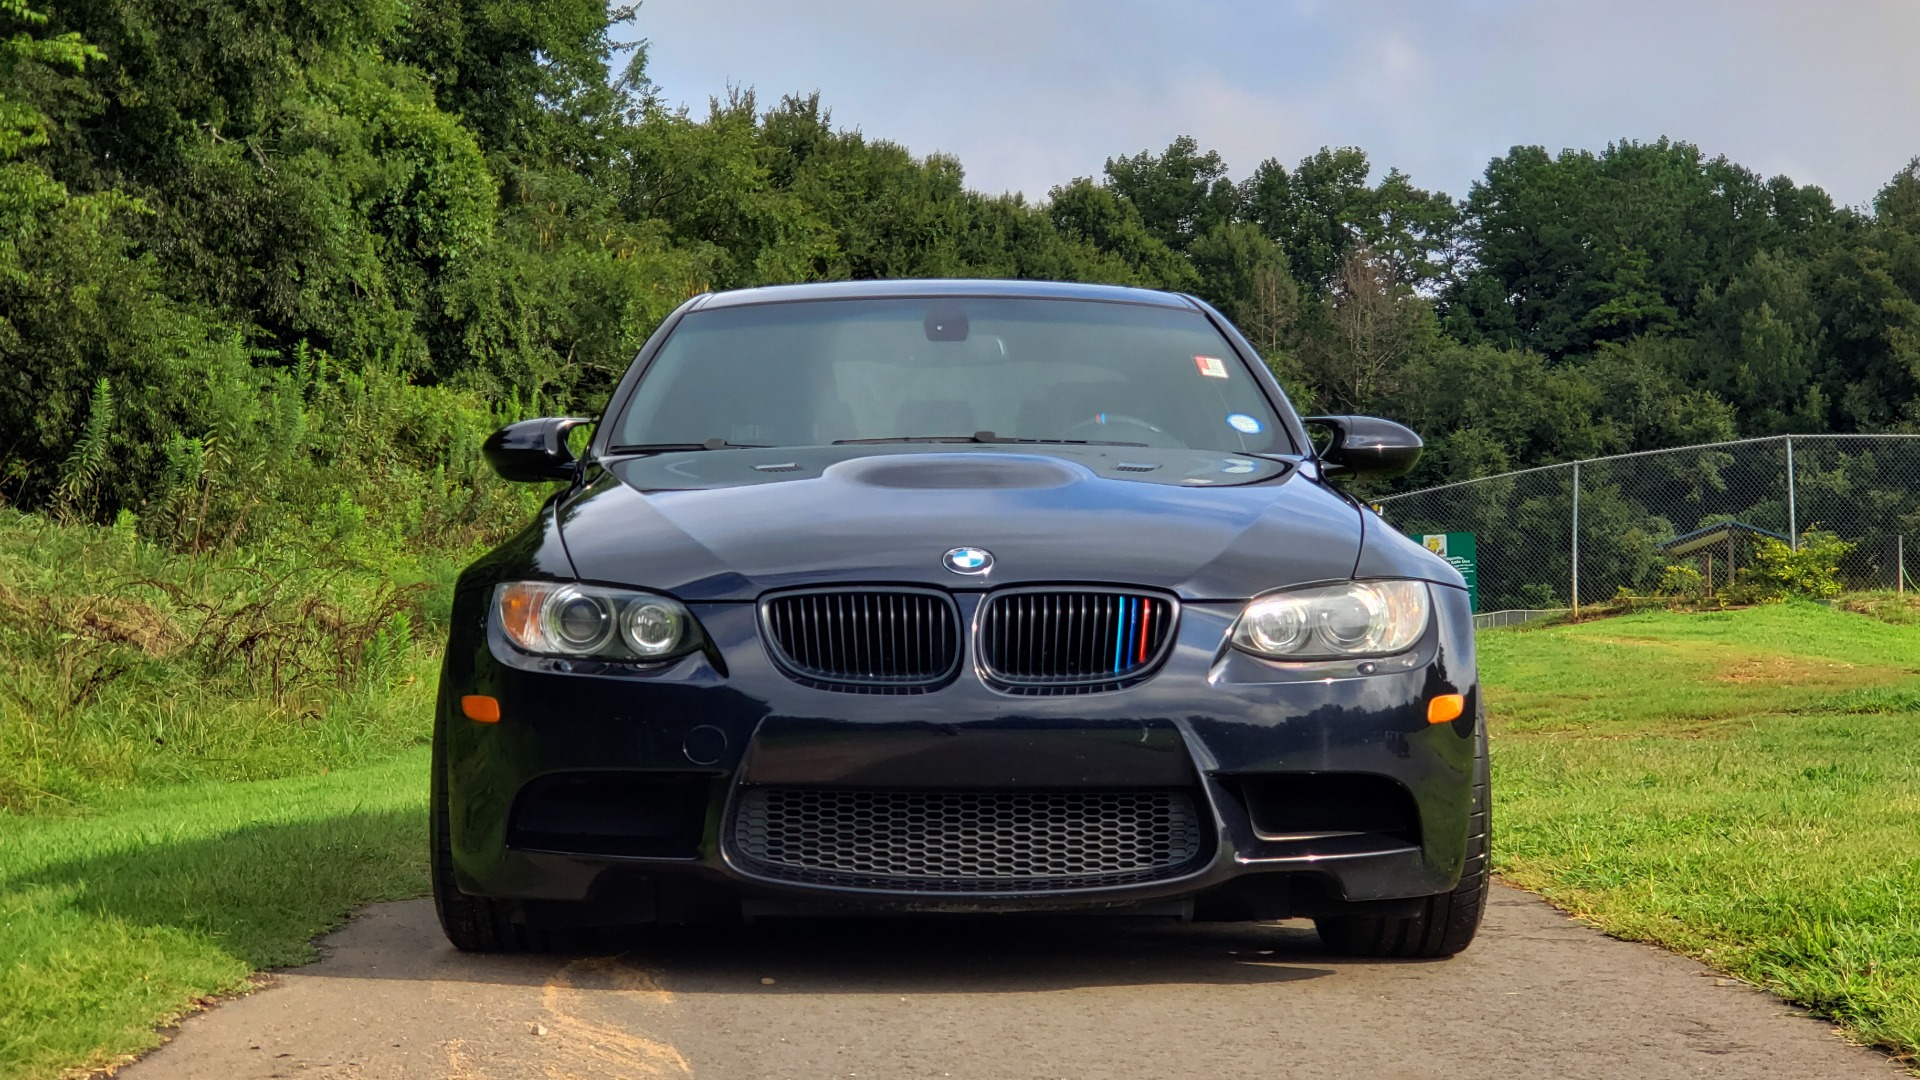 Used 2008 BMW 3 SERIES M3 PREMIUM / TECH / PDC / SUNROOF / 4.0L V8 / 6-SPD MANUAL for sale Sold at Formula Imports in Charlotte NC 28227 15